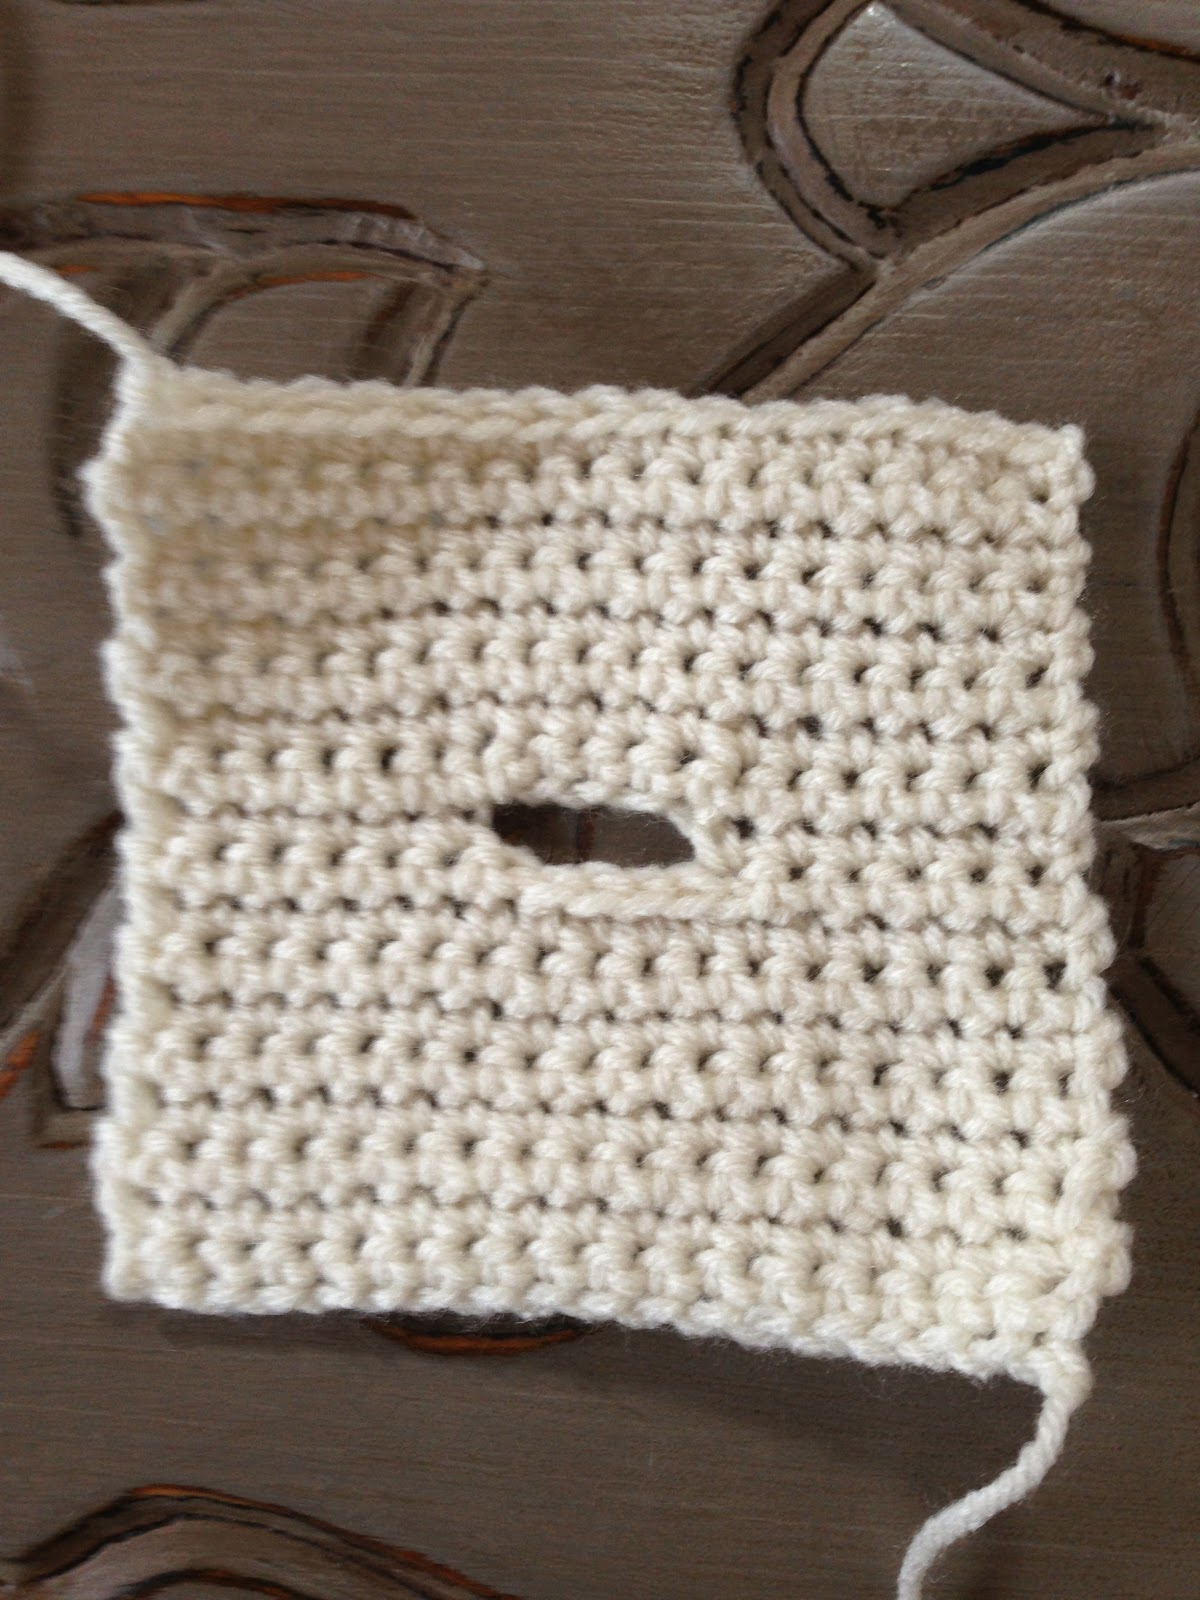 Annoos Crochet World Heart Tissue Box Cover Free Pattern